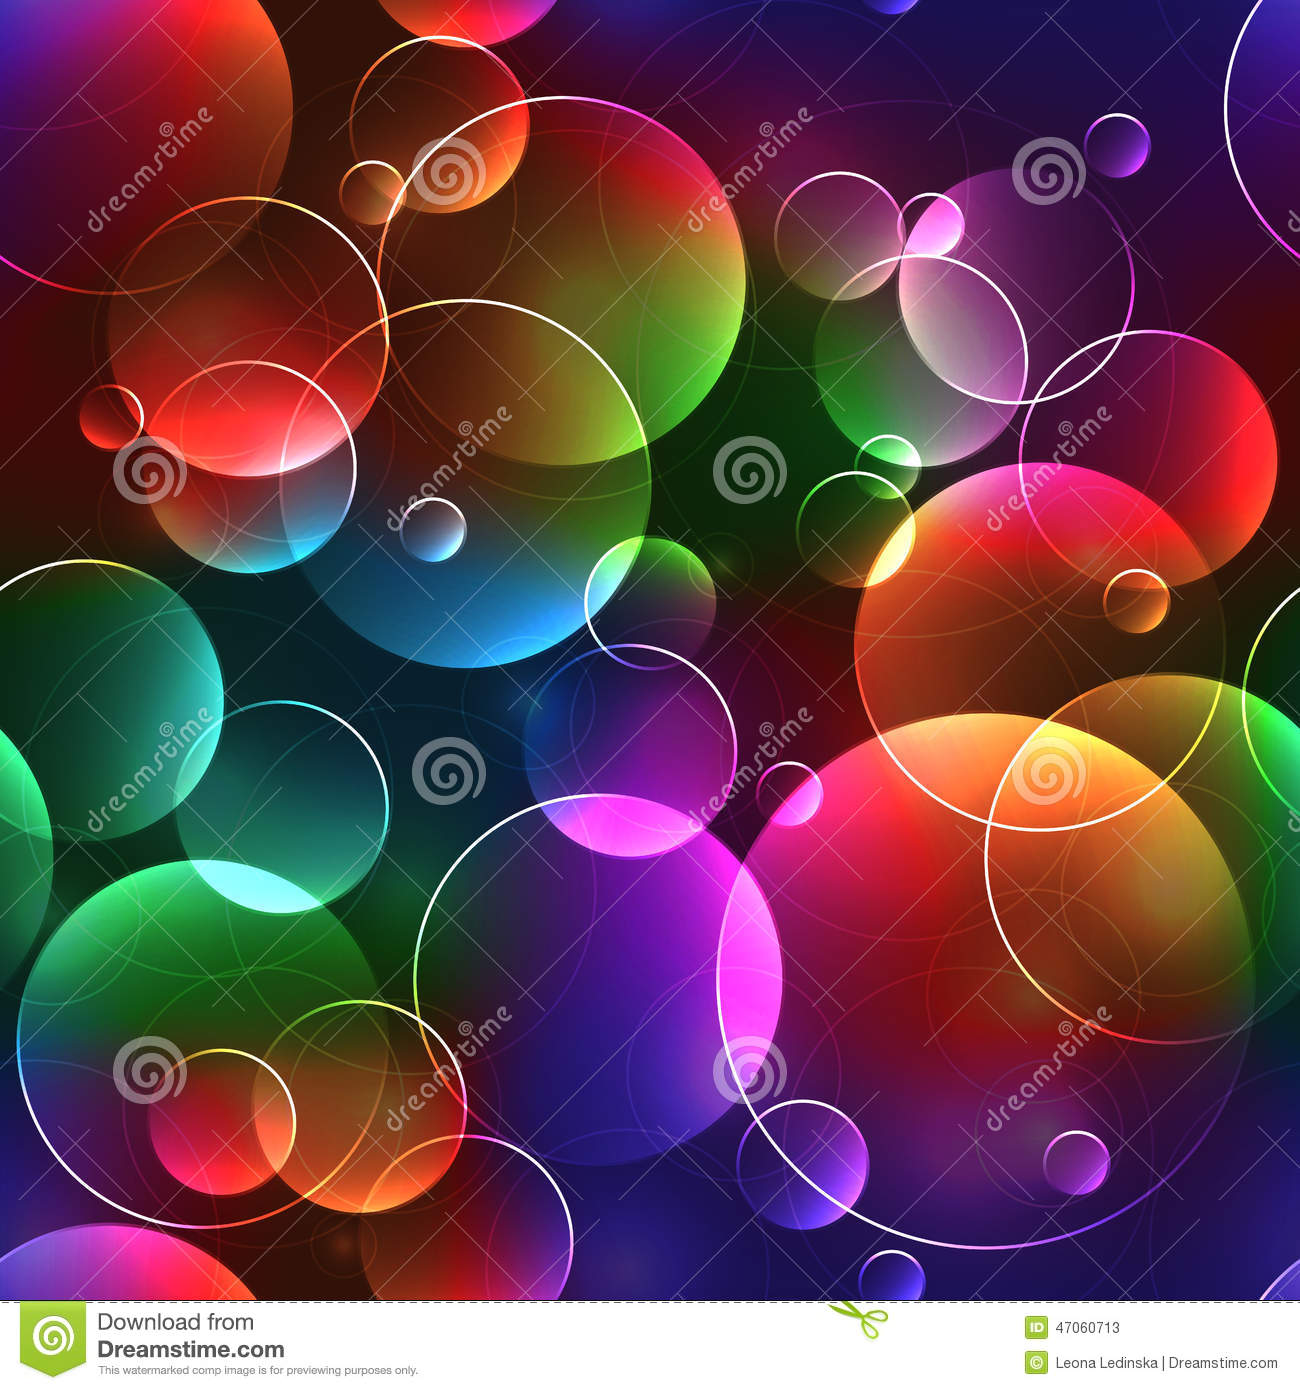 Bubble Wallpaper Hd Pink 3d Seamless Background With Bubbles In Bright Neon Colors